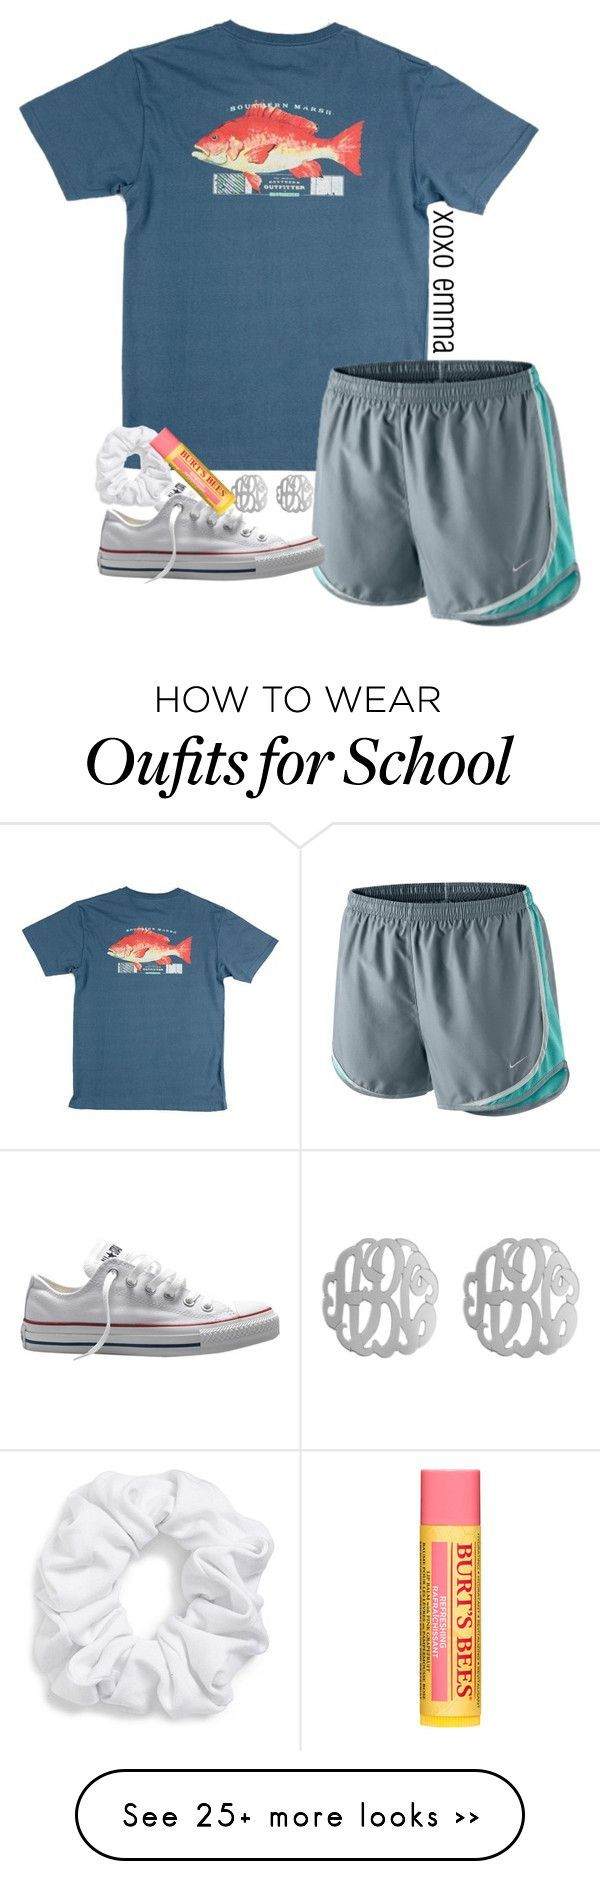 school tmrw by econgdon on Polyvore featuring NIKE, Converse, Initial Reaction, Natasha Couture and Burts Bees